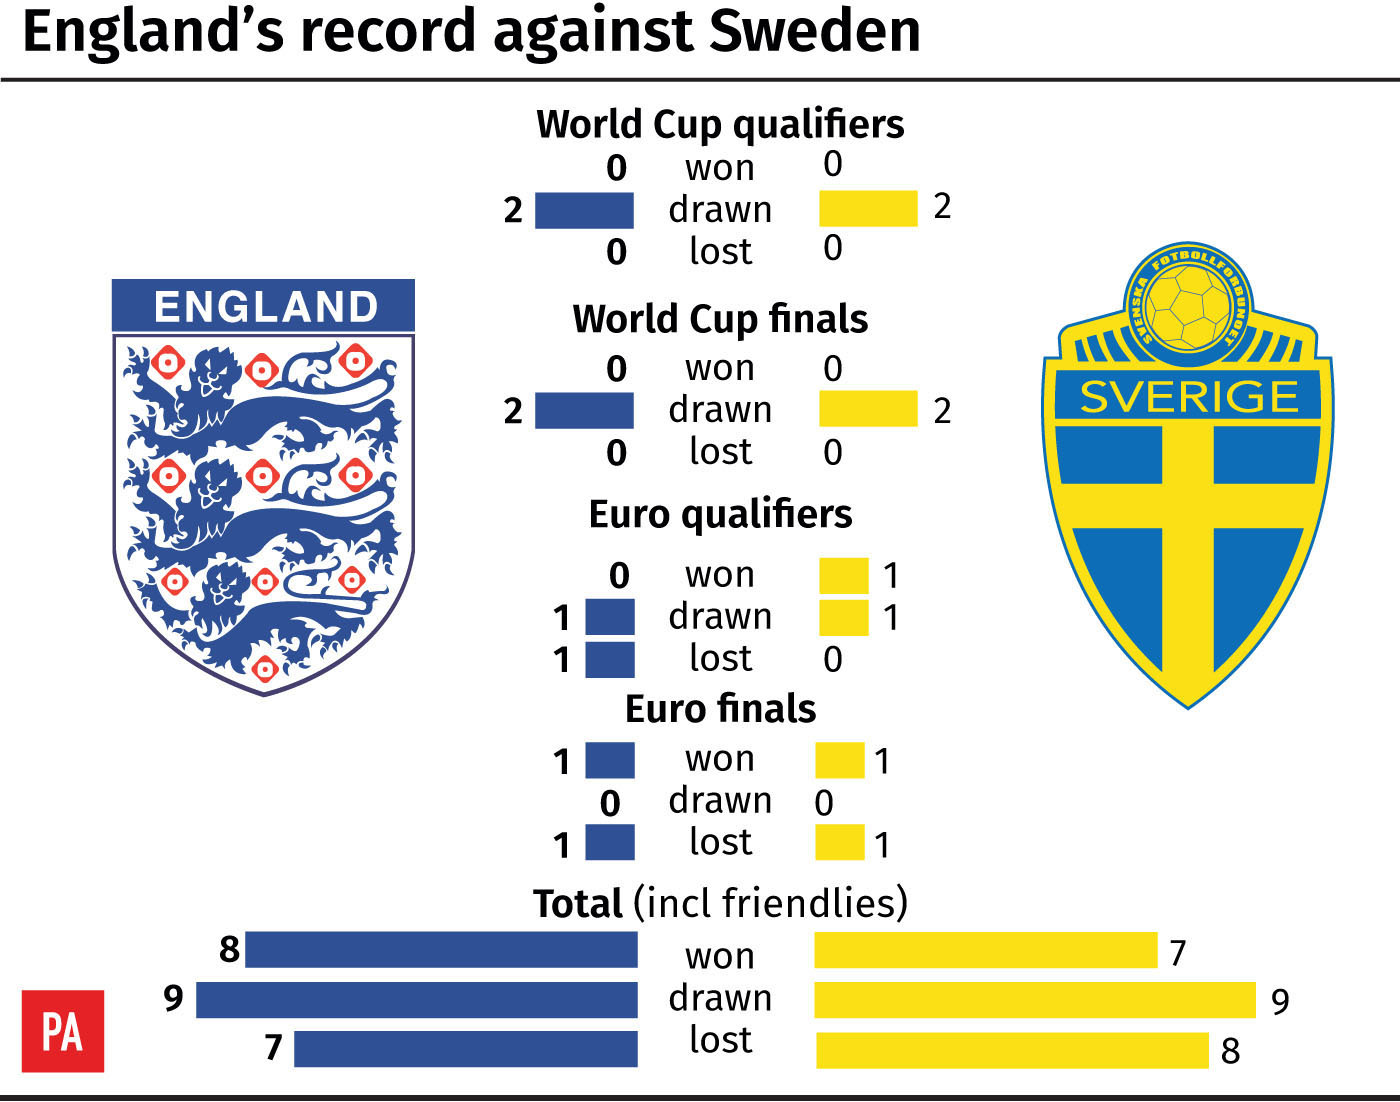 Eriksson: England has better chance vs Brazil than Sweden